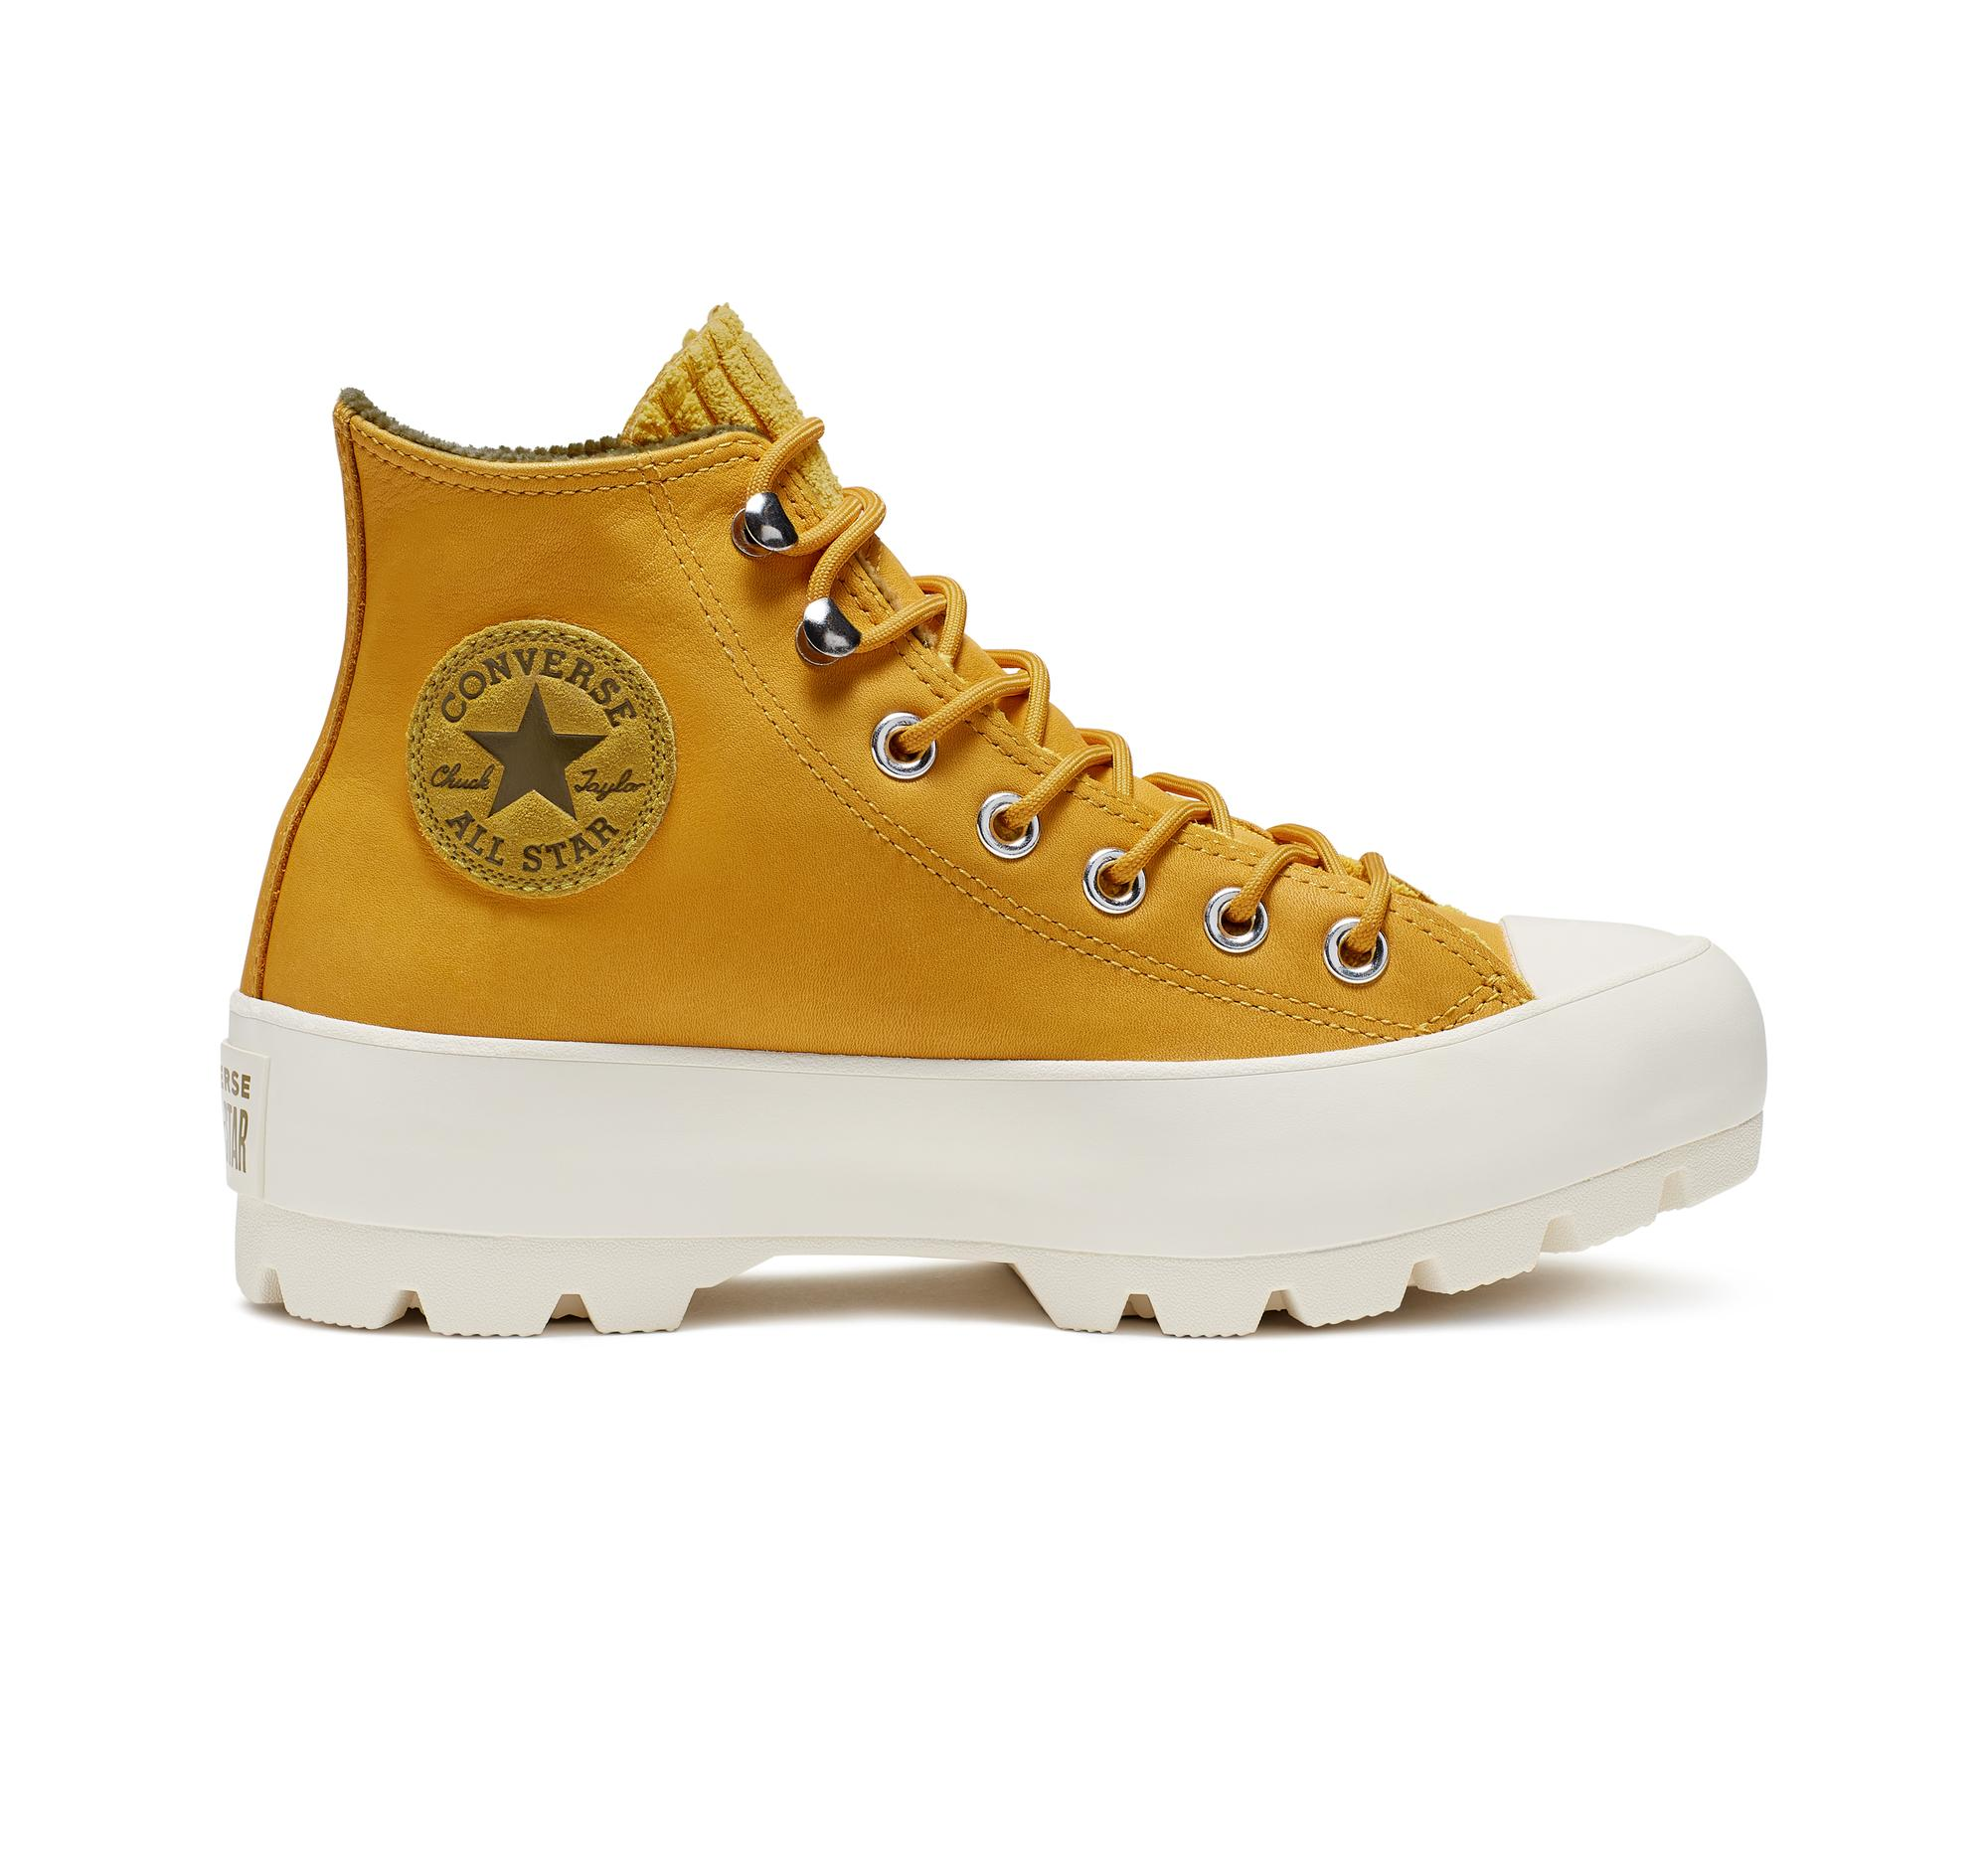 2converse all star yellow